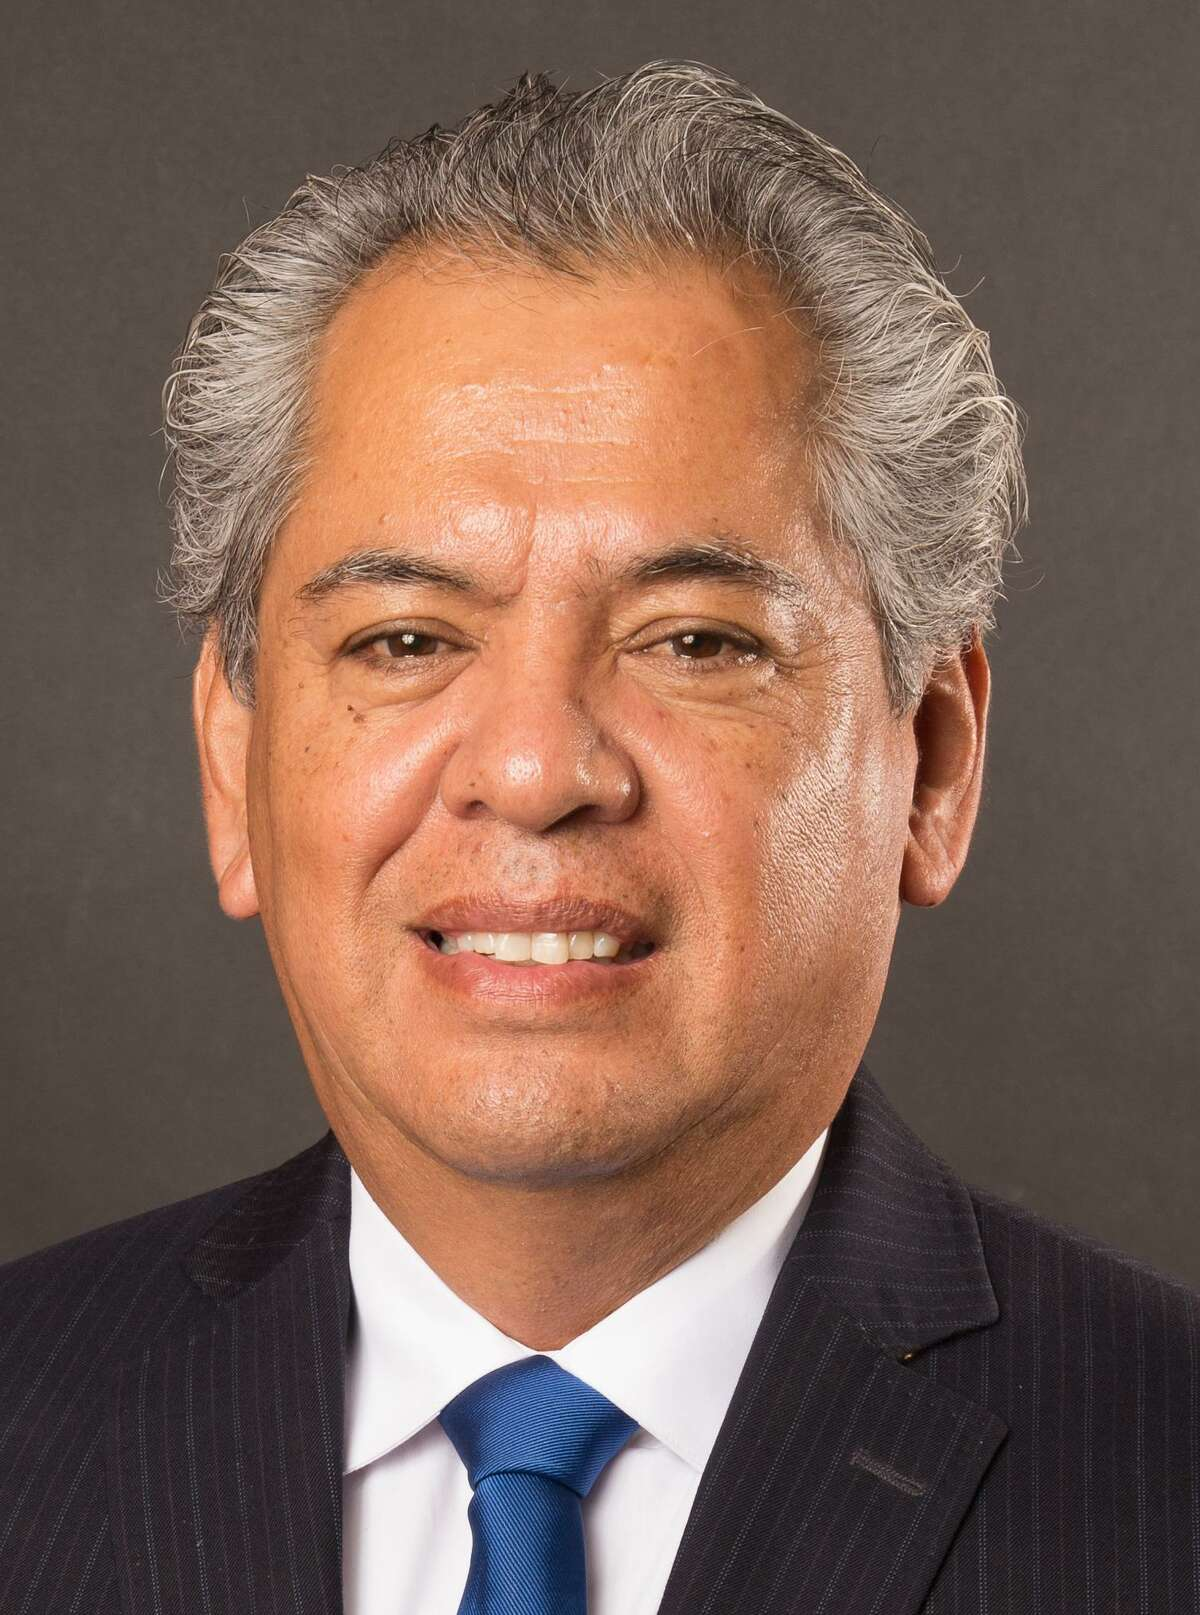 Fred Rangel, Texas State House of Representatives District 125 candidate.